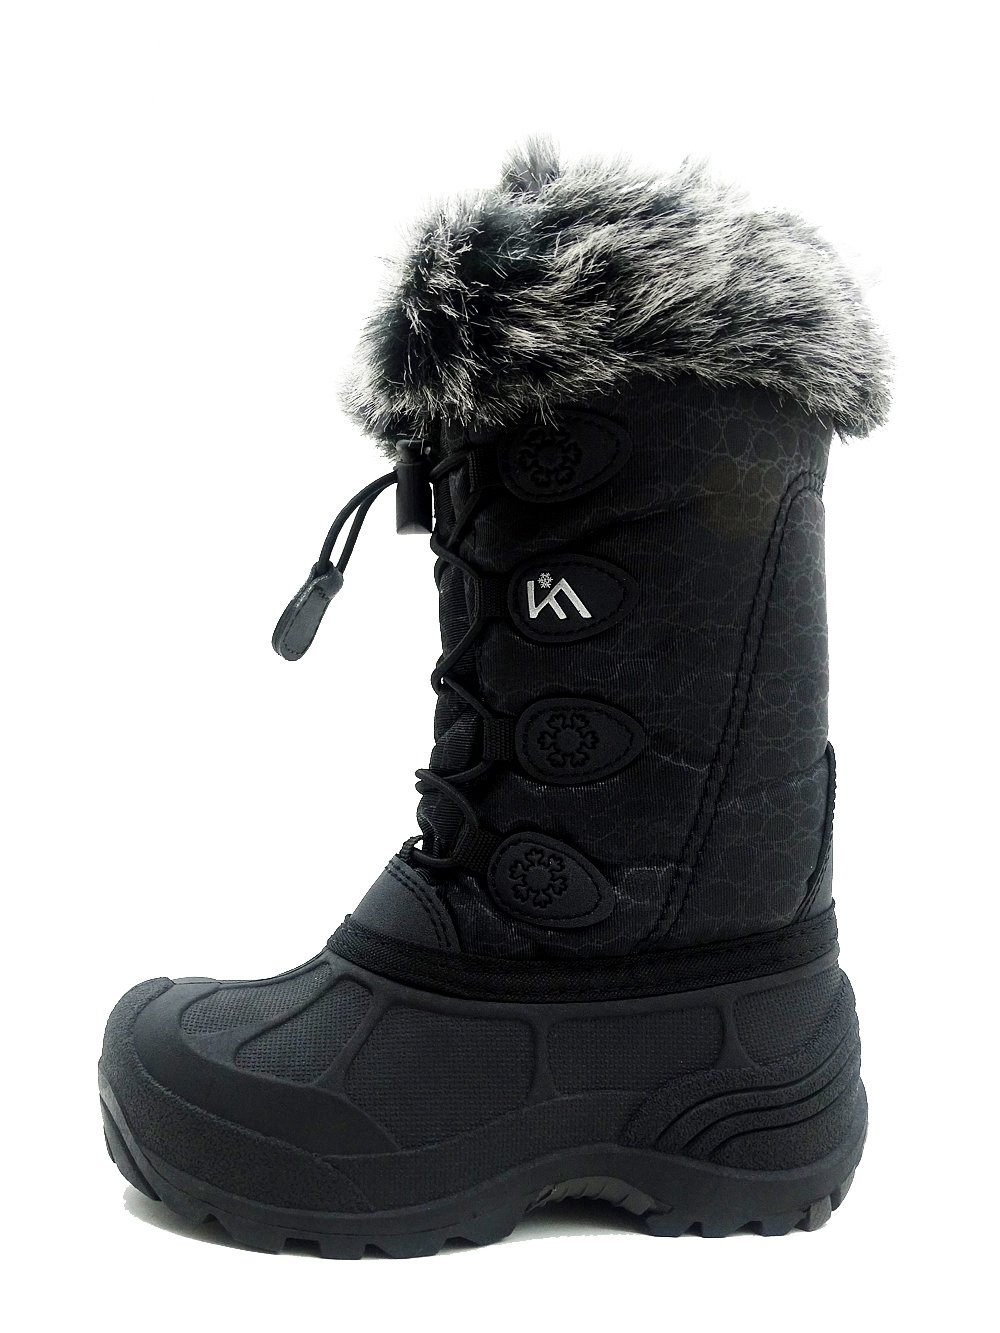 Kids Winter Snow Boots Waterproof and Insulated for Girls and Boys (13 M US Little Kid, Black)